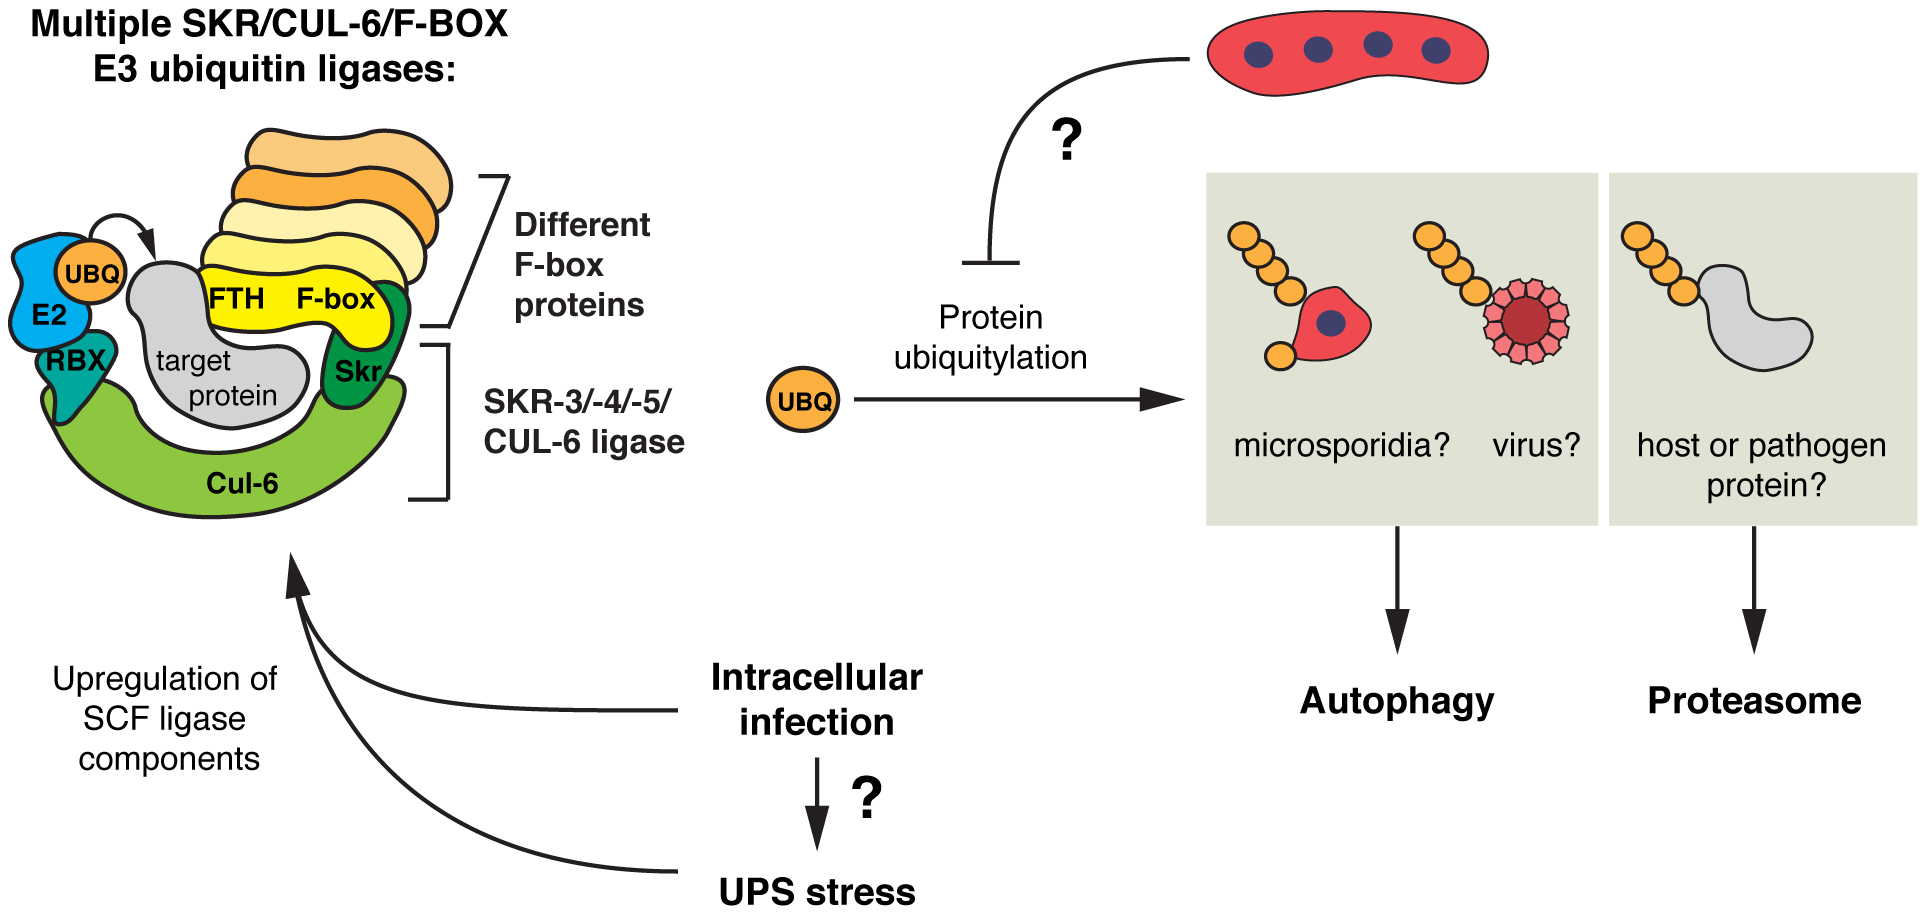 Model for SCF E3 ligases and ubiquitin-mediated responses to intracellular infection in <i>C. elegans</i>.